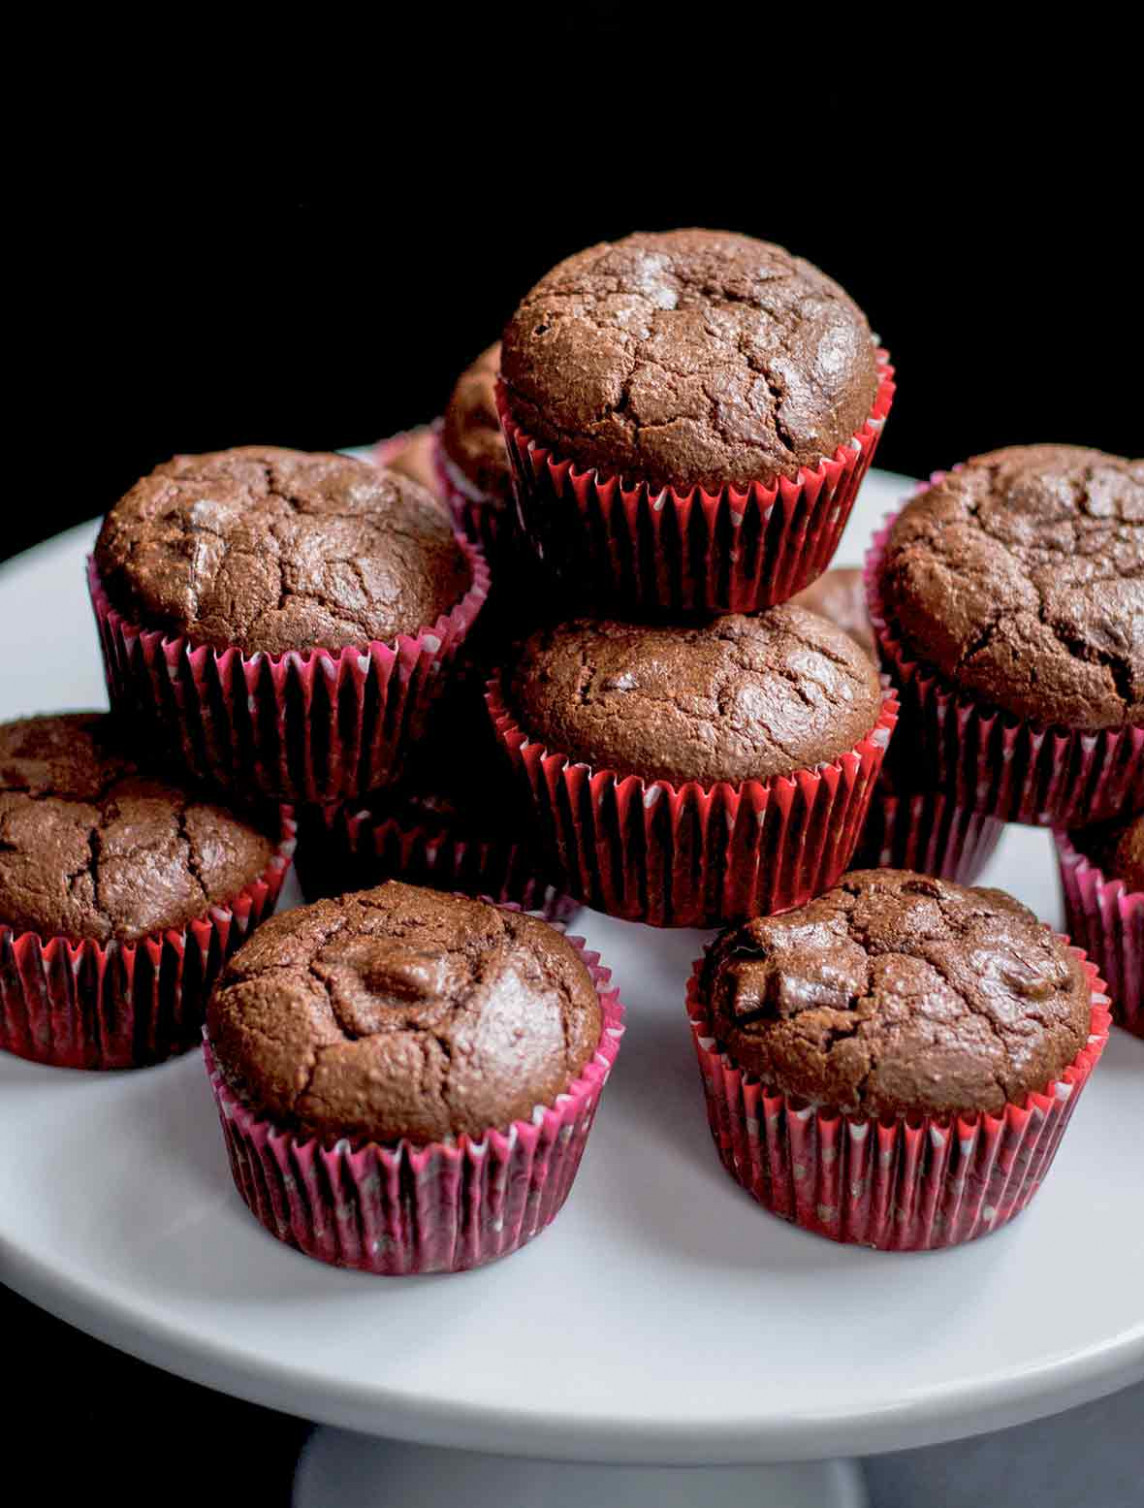 Cocoa Muffins - recipes muffins healthy